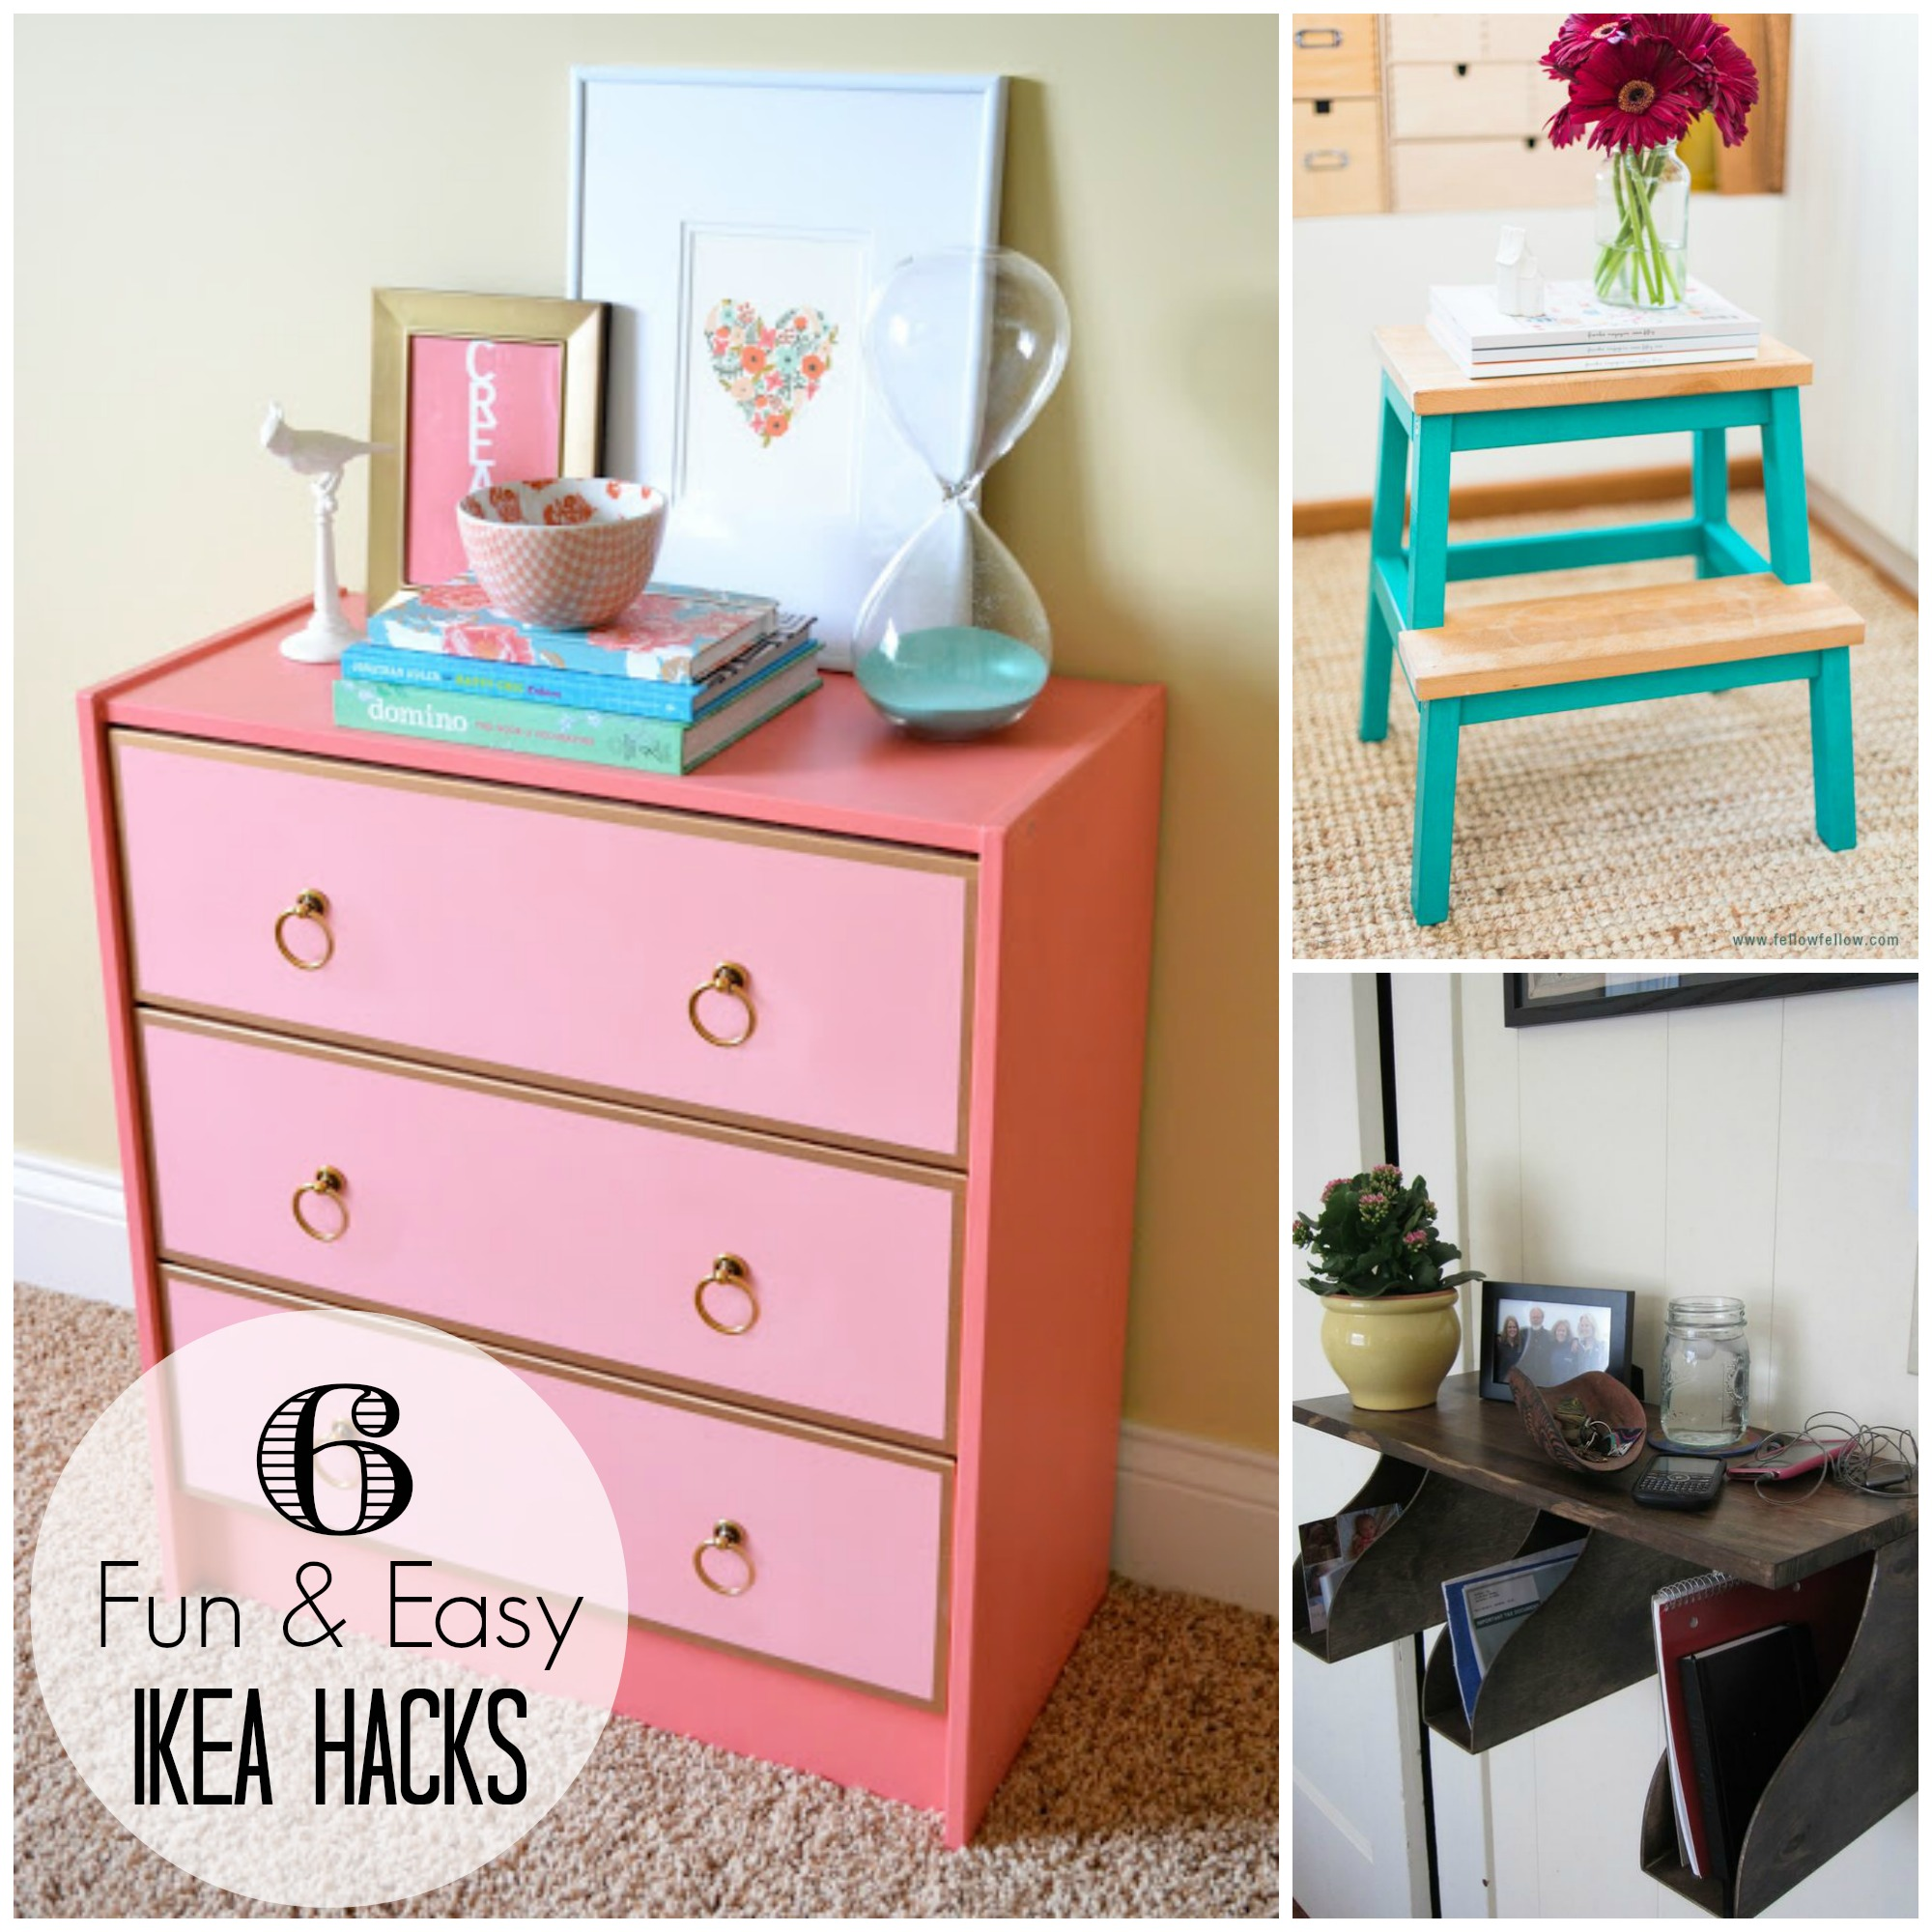 {trending Tuesday} 6 Fun & Easy Ikea Hacks